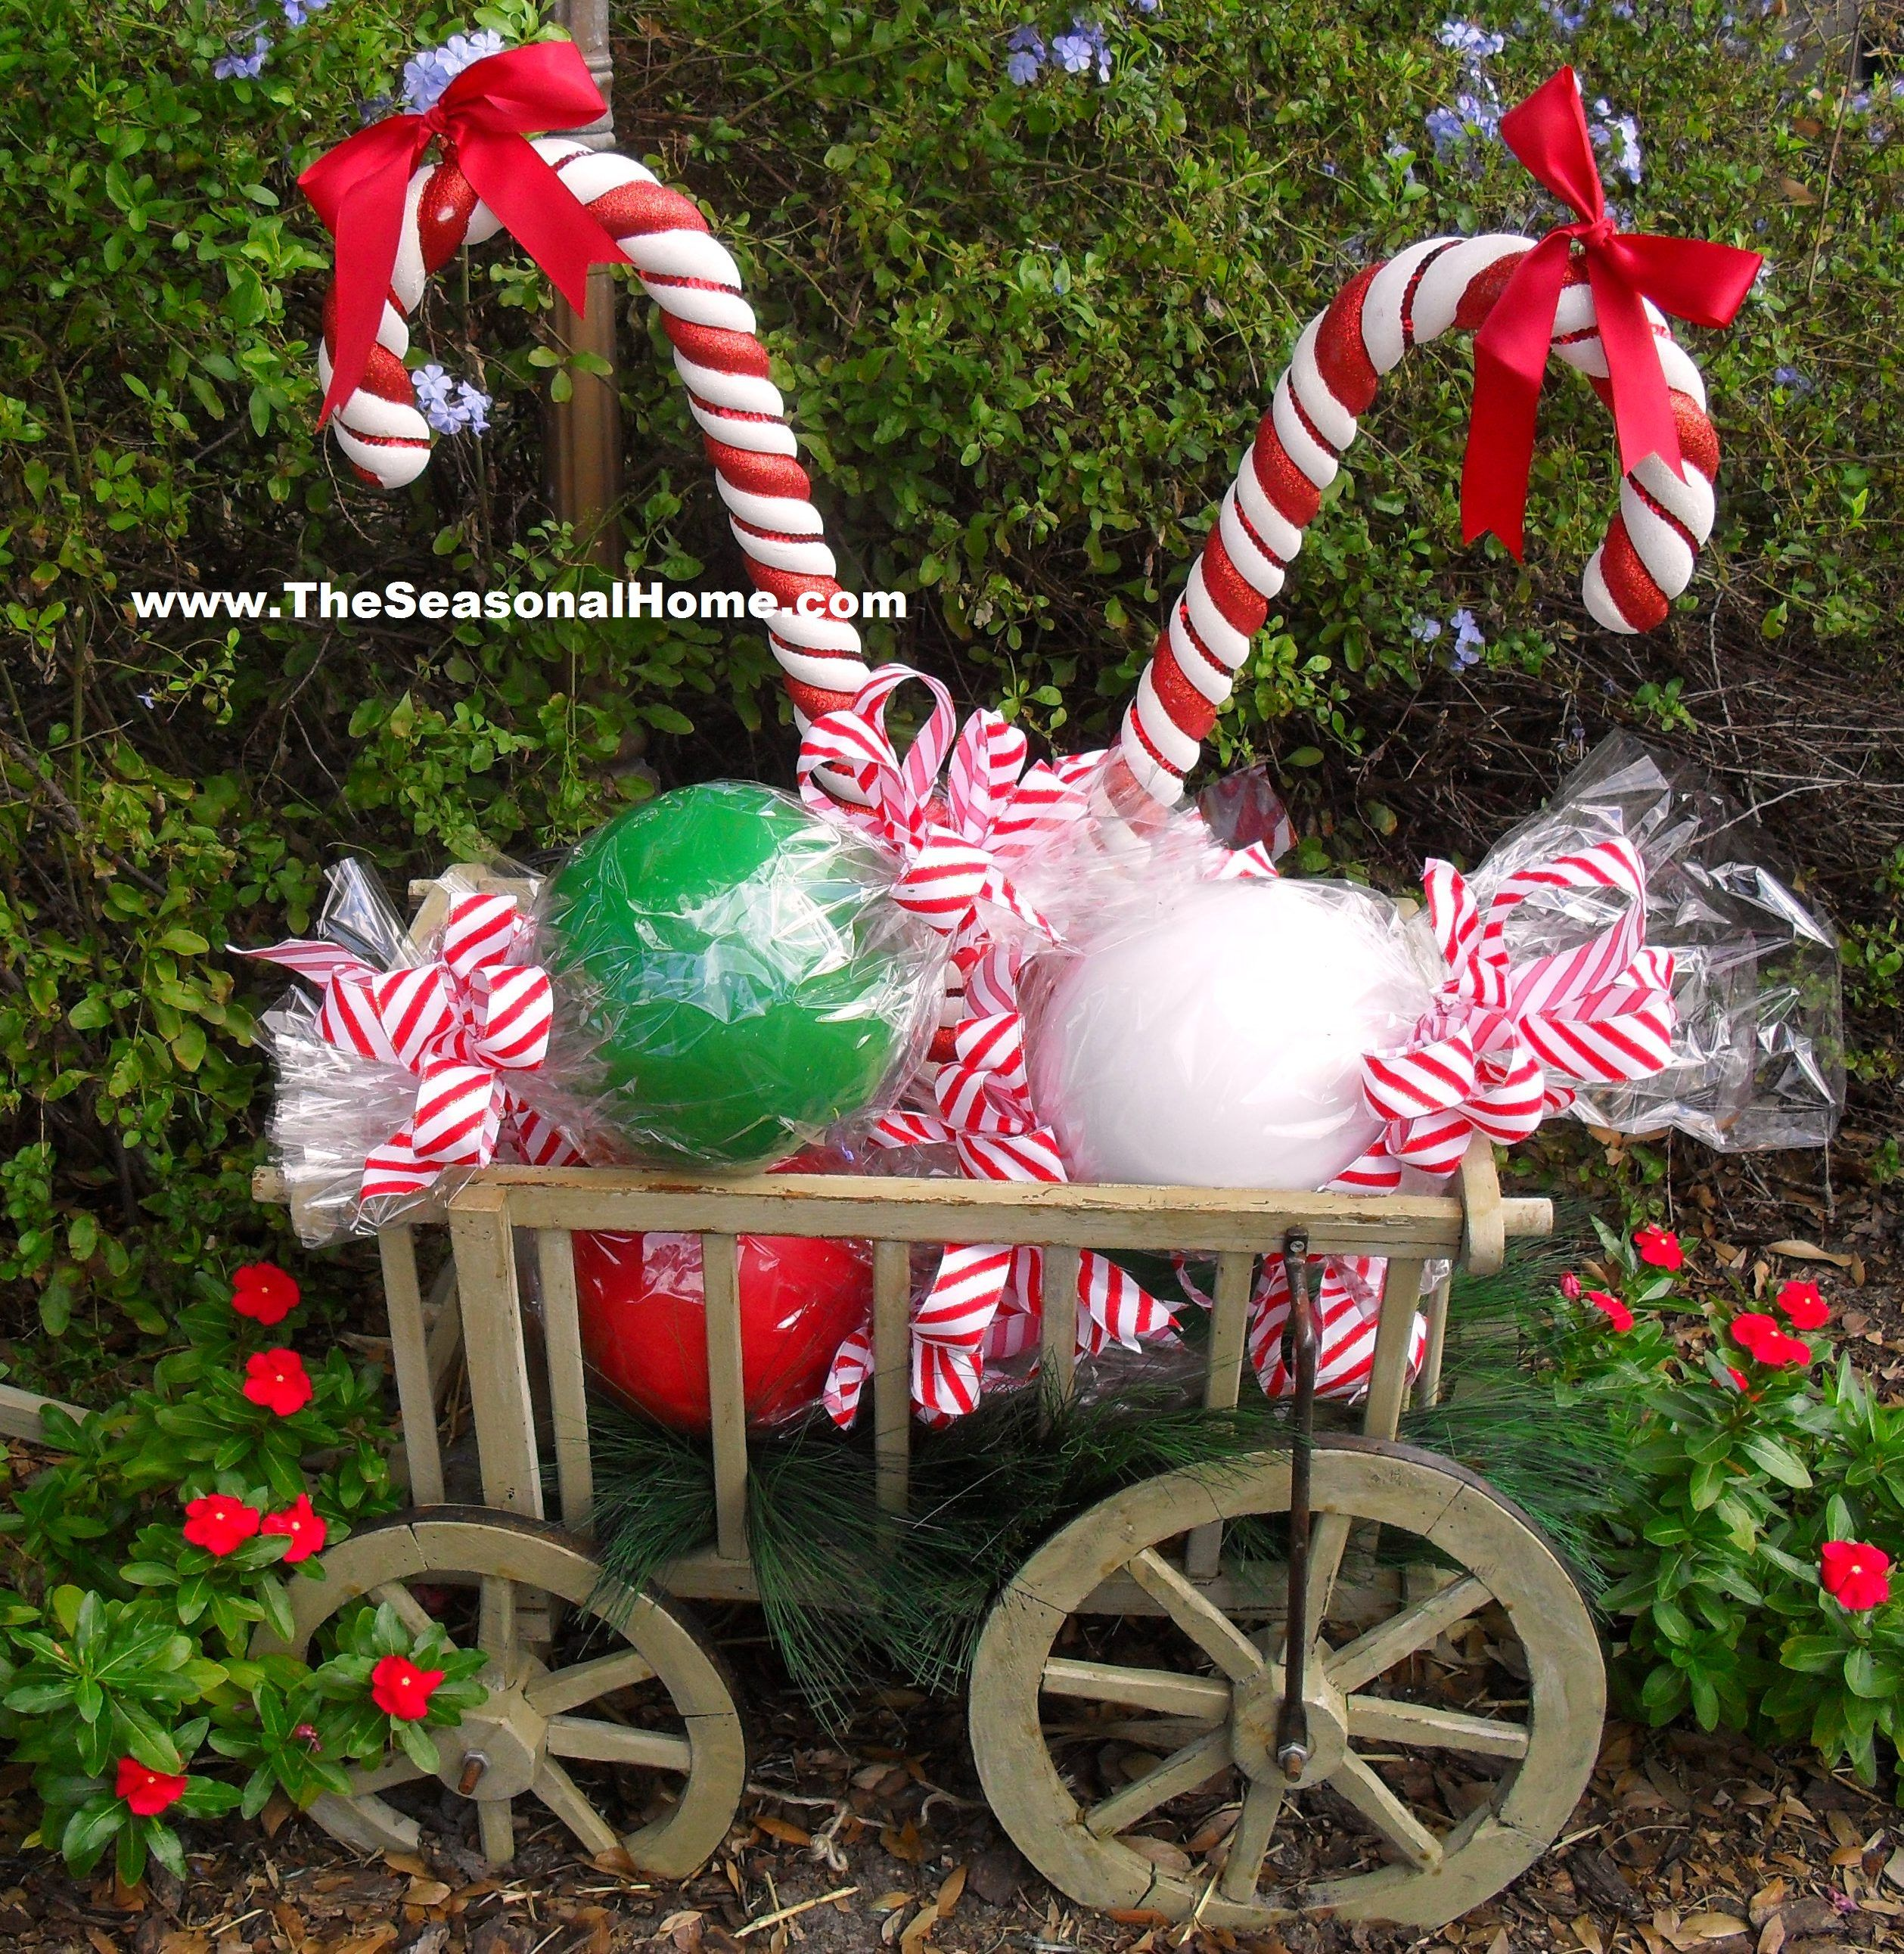 How to diy outdoor candy on the seasonal home blog for Garden decorations to make